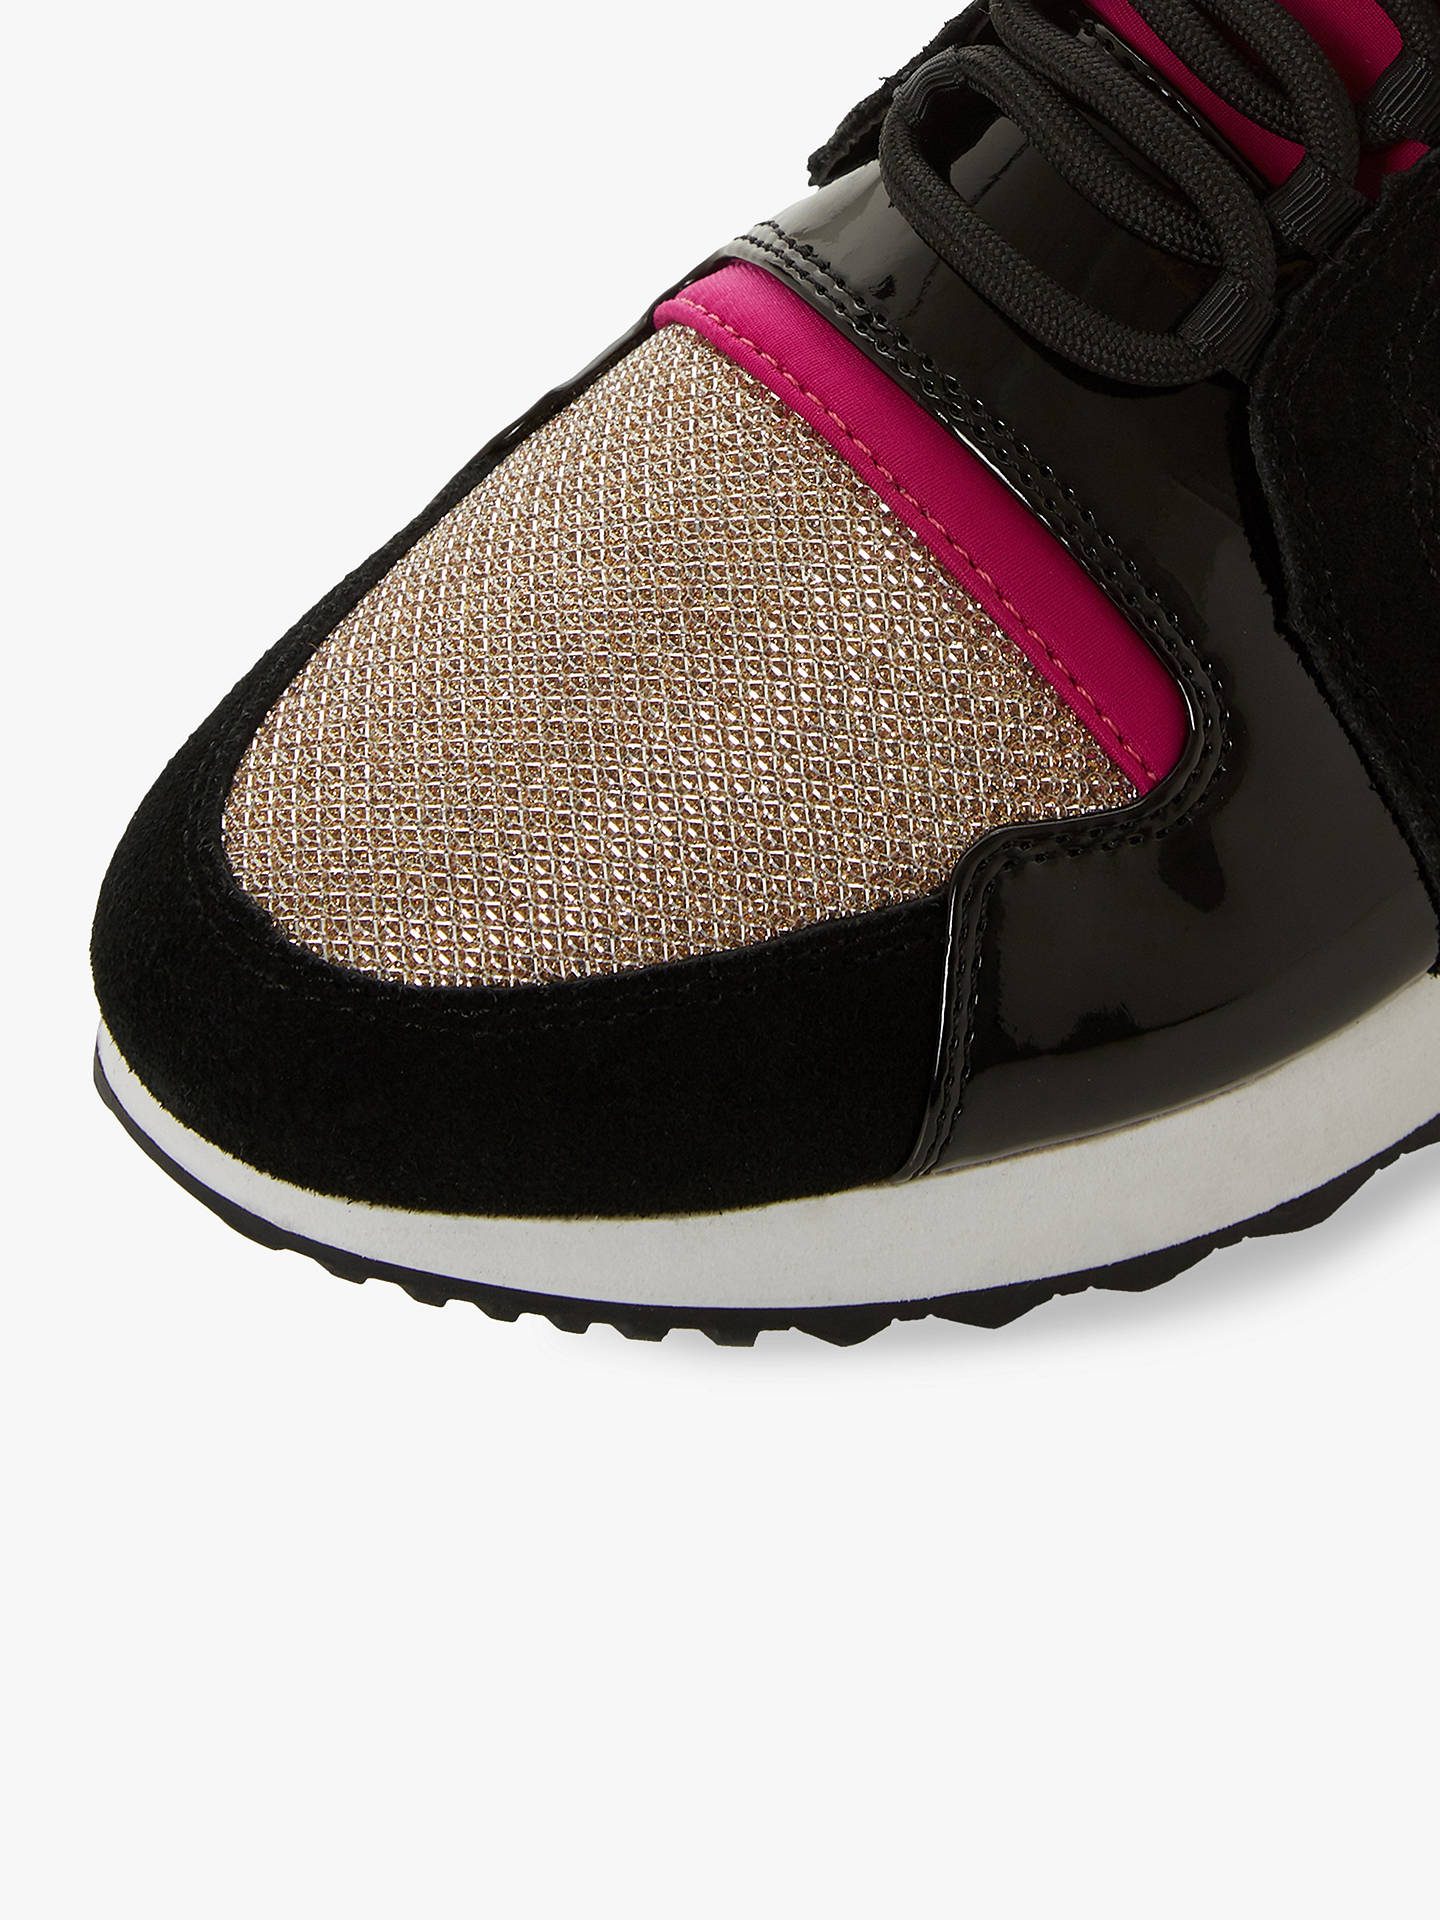 10dd27147618 ... Buy Dune Eavie Lace Up Trainers, Leopard Multi, 5 Online at  johnlewis.com ...